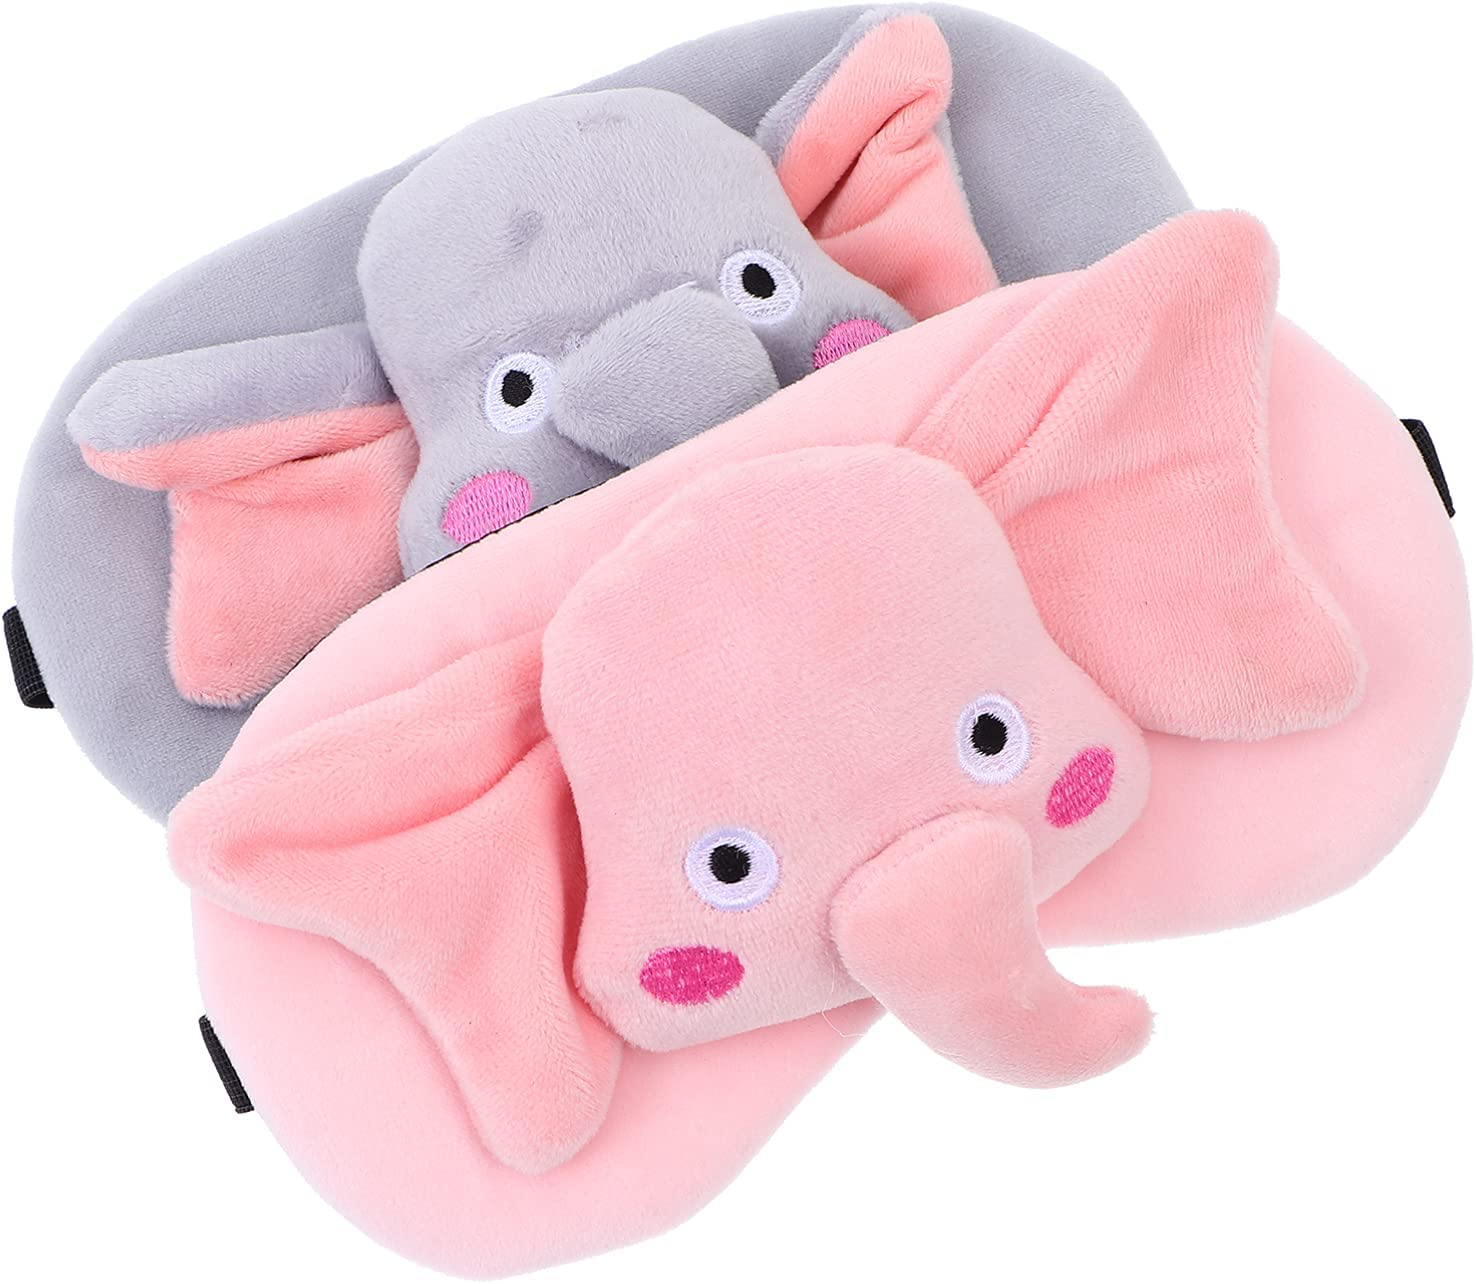 EXCEART 2Pcs Sleeping Adjustable Night Cover Free Shipping Cheap Bargain Gift Clearance SALE! Limited time! Ele Eye Cartoon